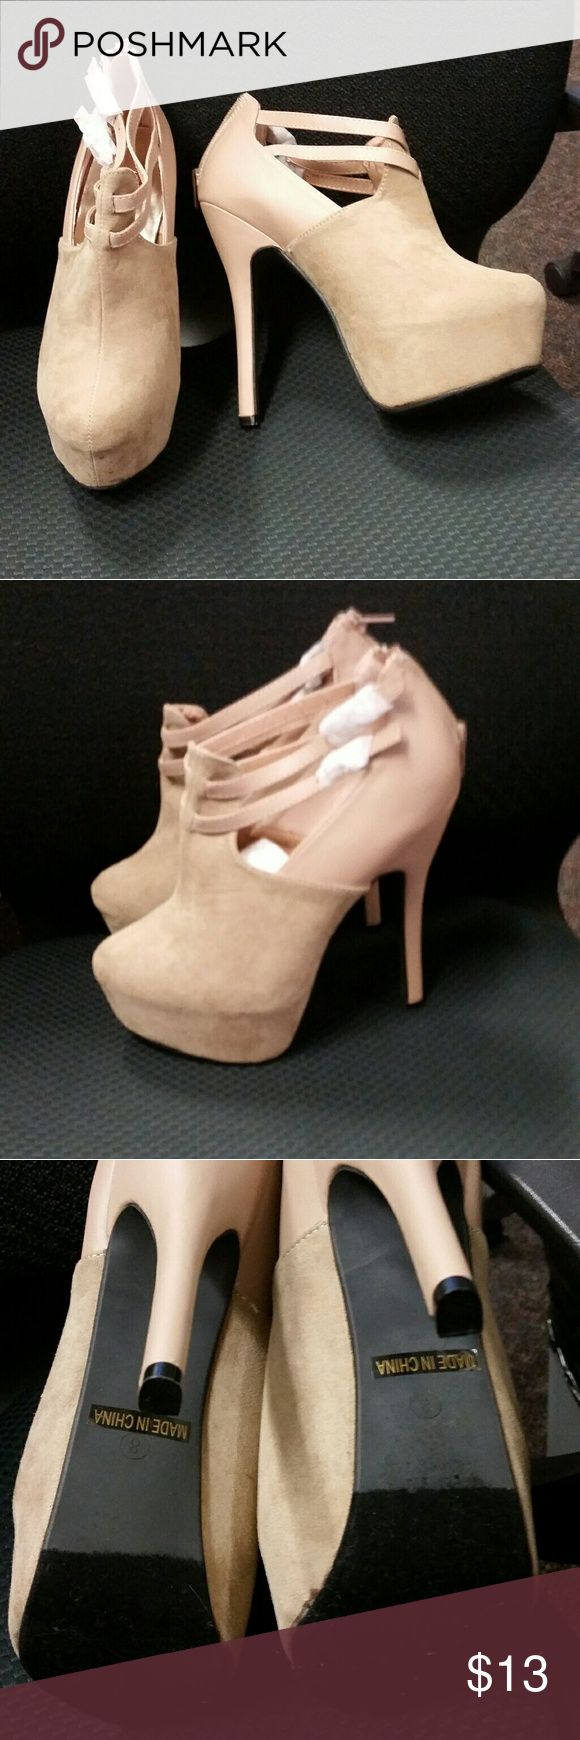 Nude ankle platform boot Nude ankle platform ankle boot new never worn has a little dirt on tip of one shoe see pic. Too high for me too late to return. Make me an offer. red circle Shoes Ankle Boots & Booties